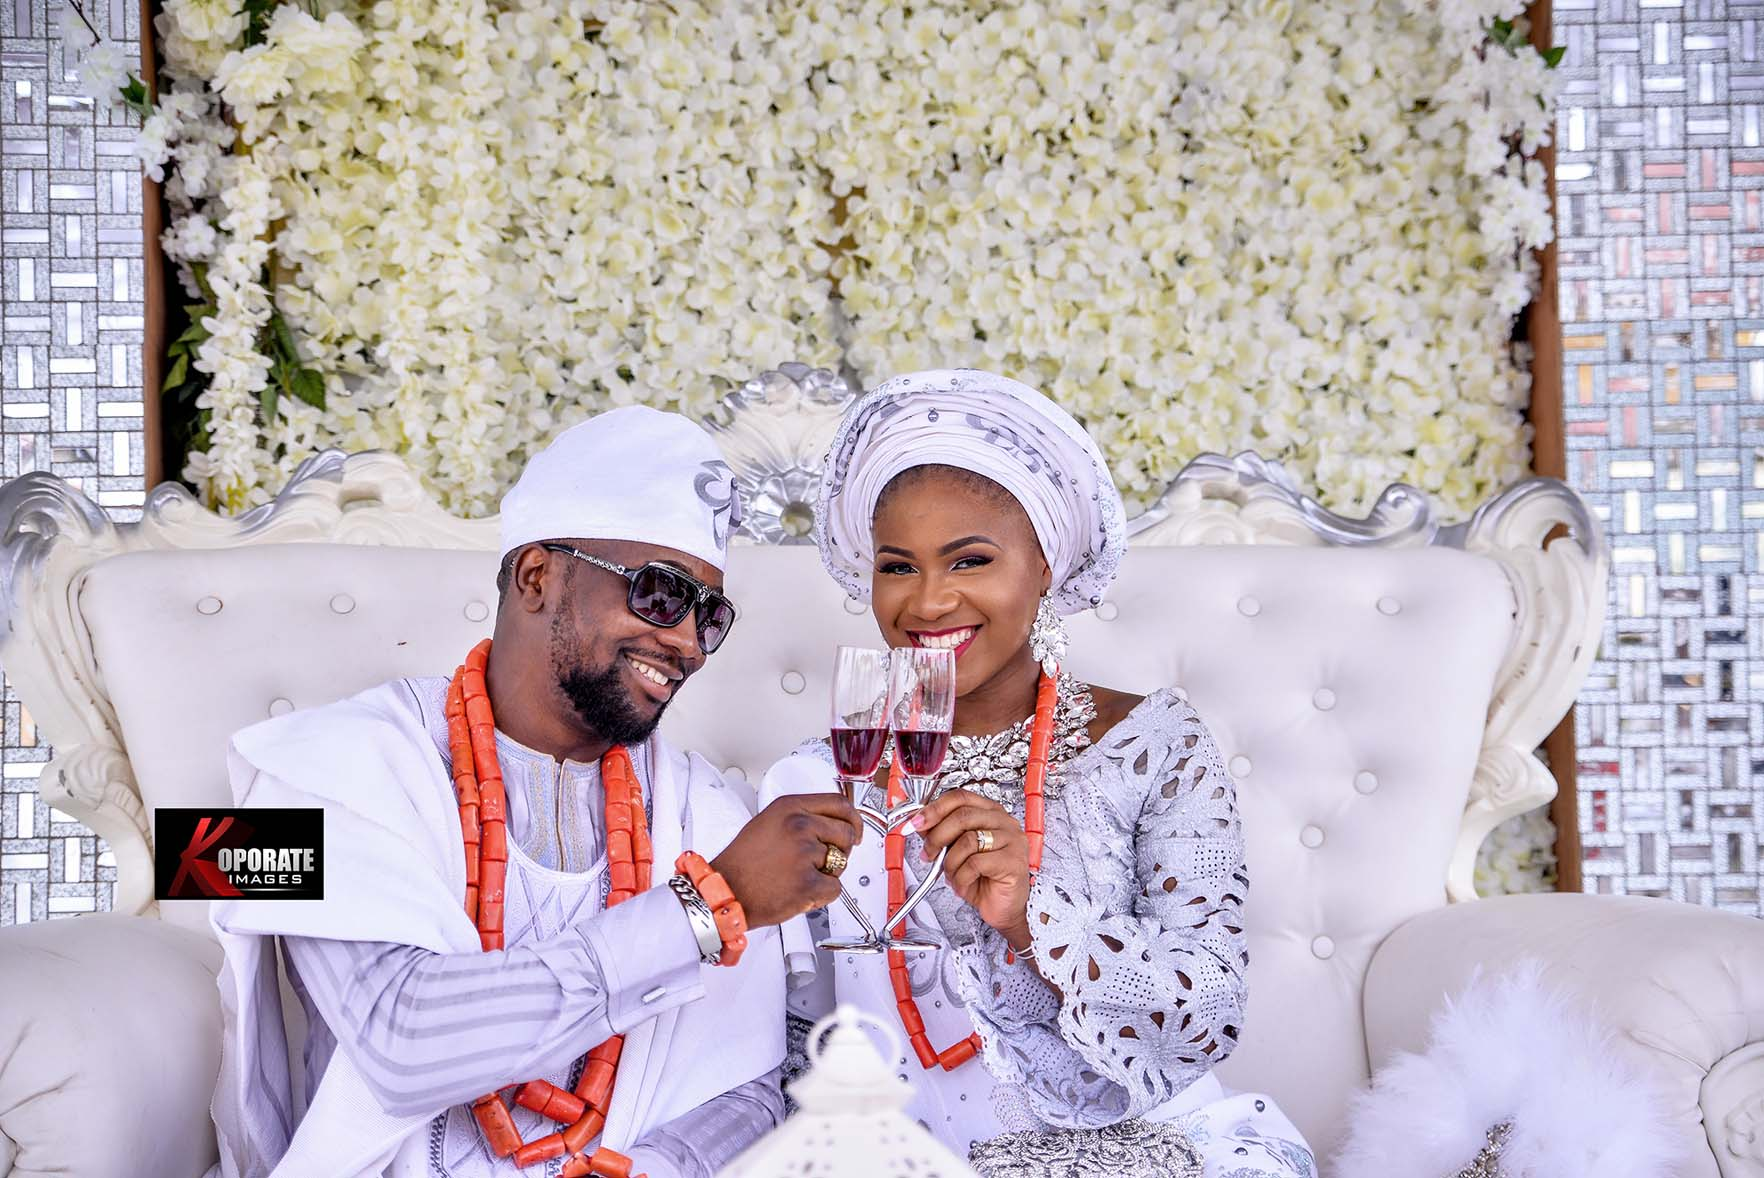 PRECIOUS AND OSAROBO-EDO WEDDING photos & videos taken by Koporate Images, Benin City, Edo state, Nigeria. Koporate images is a Photography & Video Coverage studio located in Benin City. We provide Professional Photographers for your weddings, birthdays and any special events